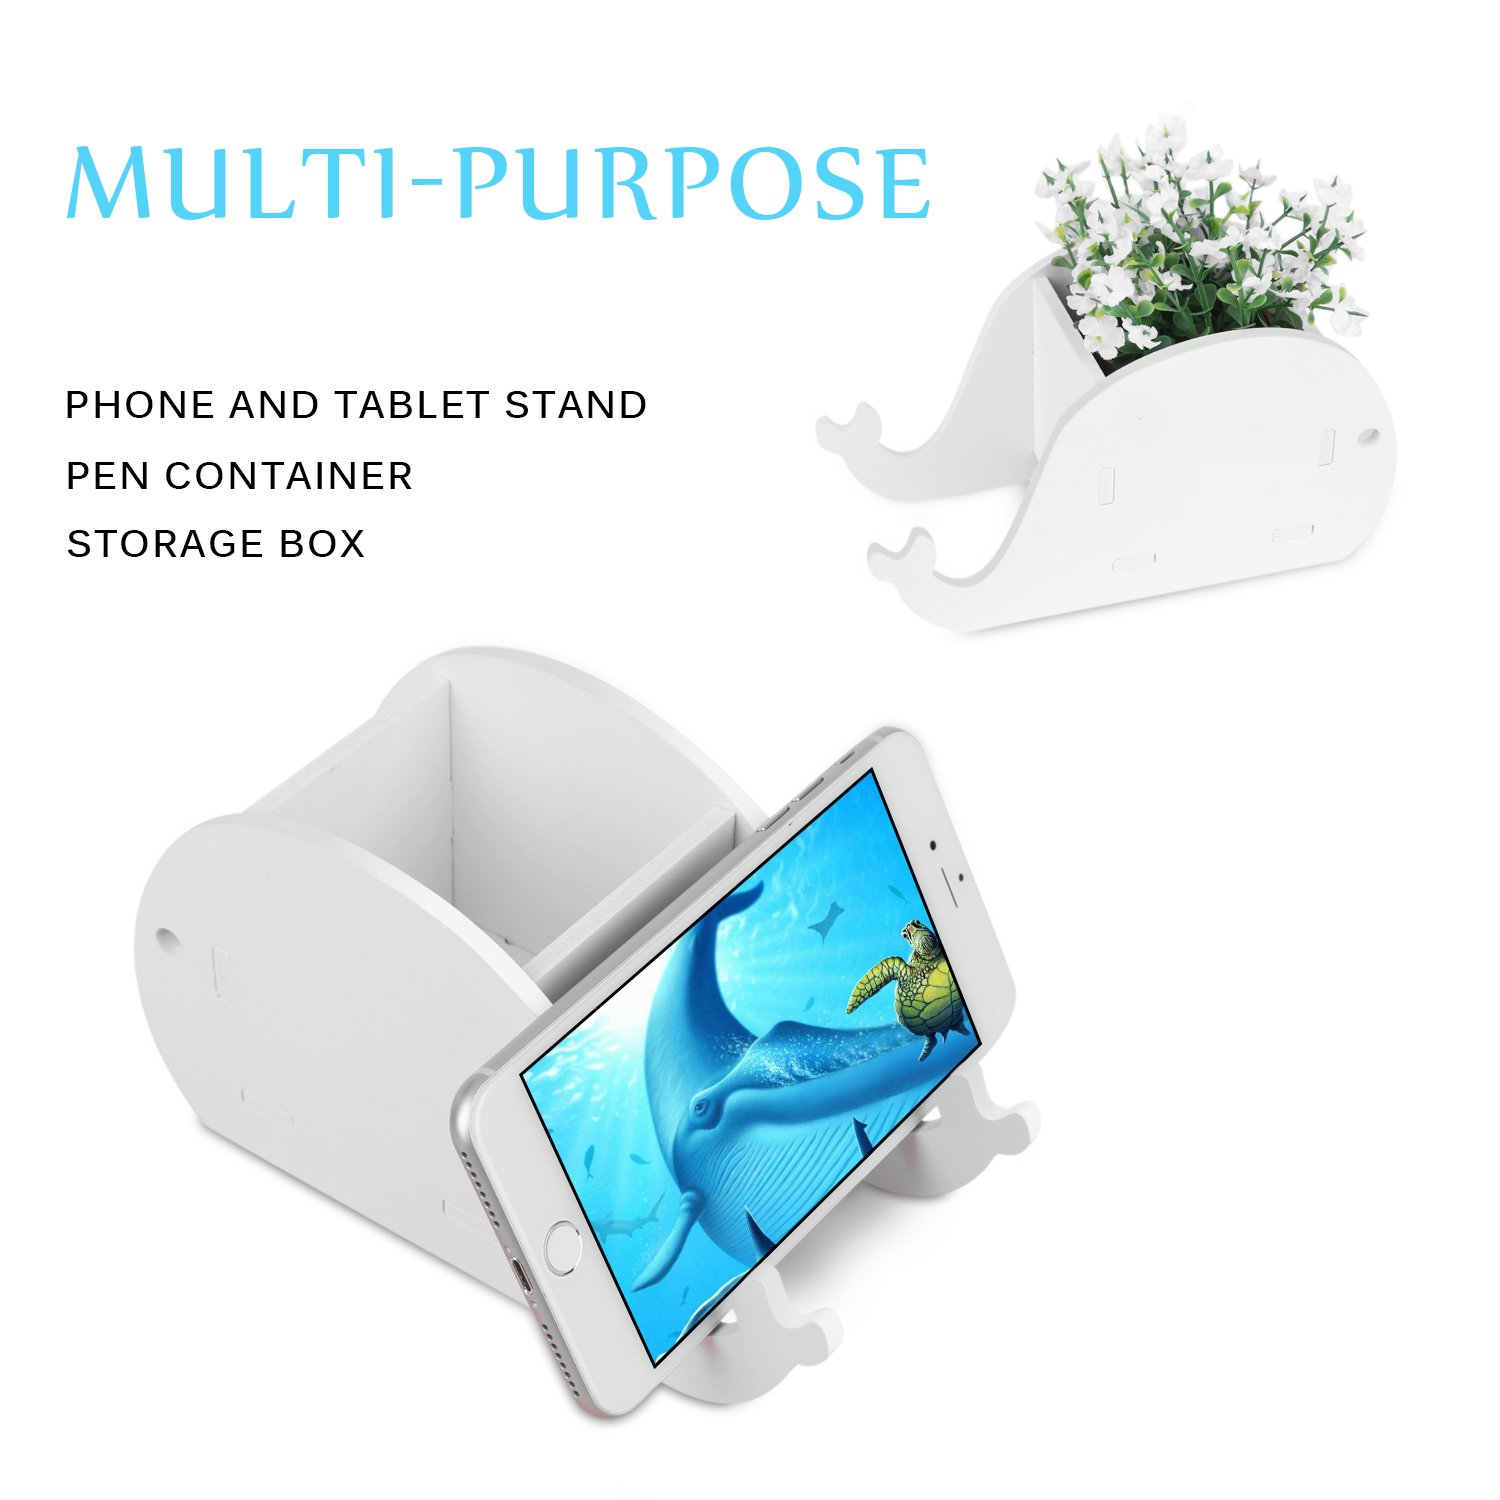 Cell Phone Stand Cute Elephant Phone Stand Tablet Desk Bracket With Pen Pencil Holder Compatible Smartphone Desk Decoration Mu Reputation First Pen Holders